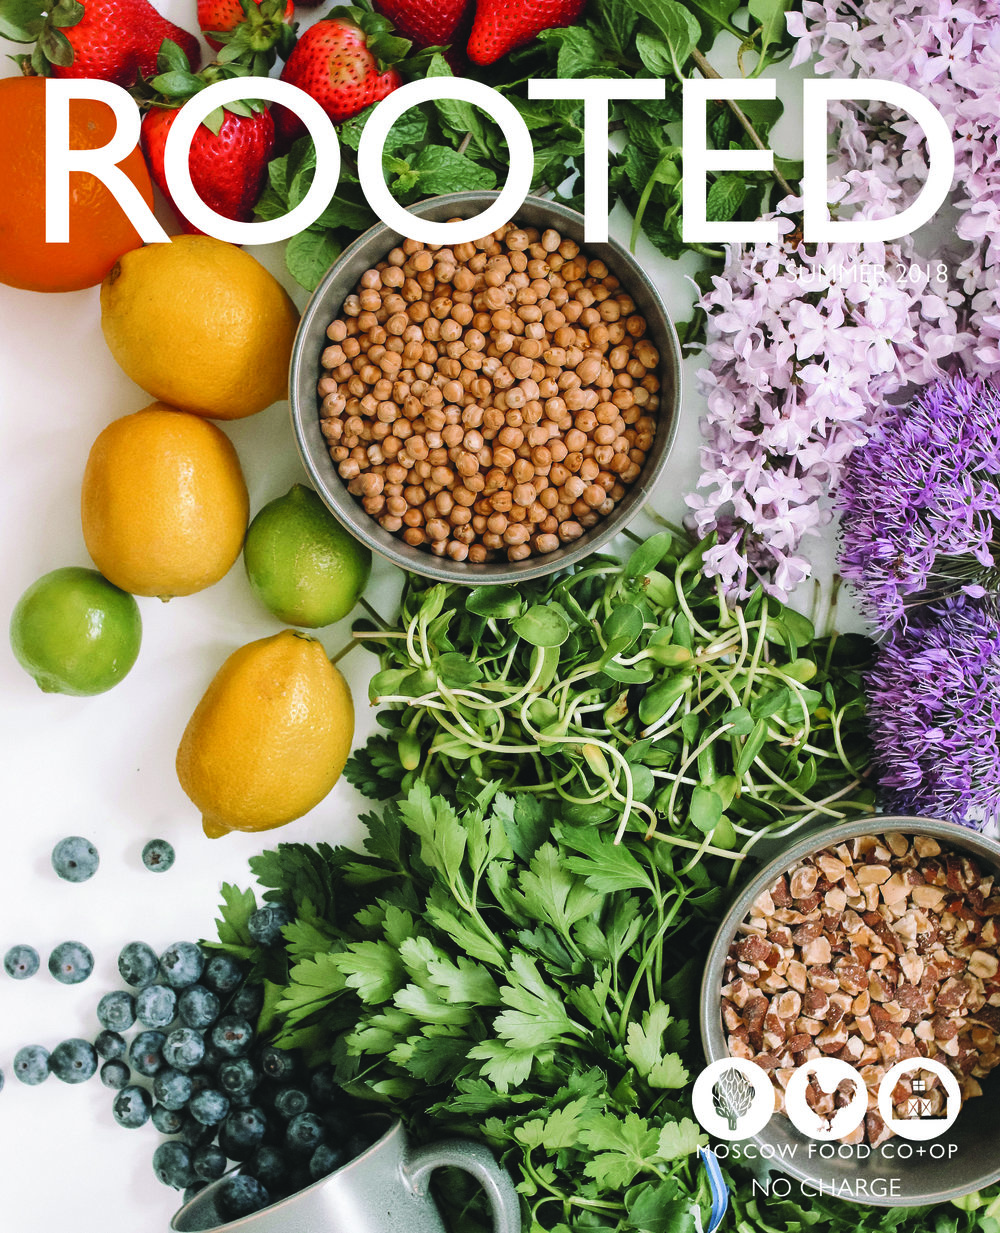 Click here to read the Summer issue online now! - This issue has it all - local food, local history, amazing recipes and photos, and even a few day trip suggestions for our adventurous readers.